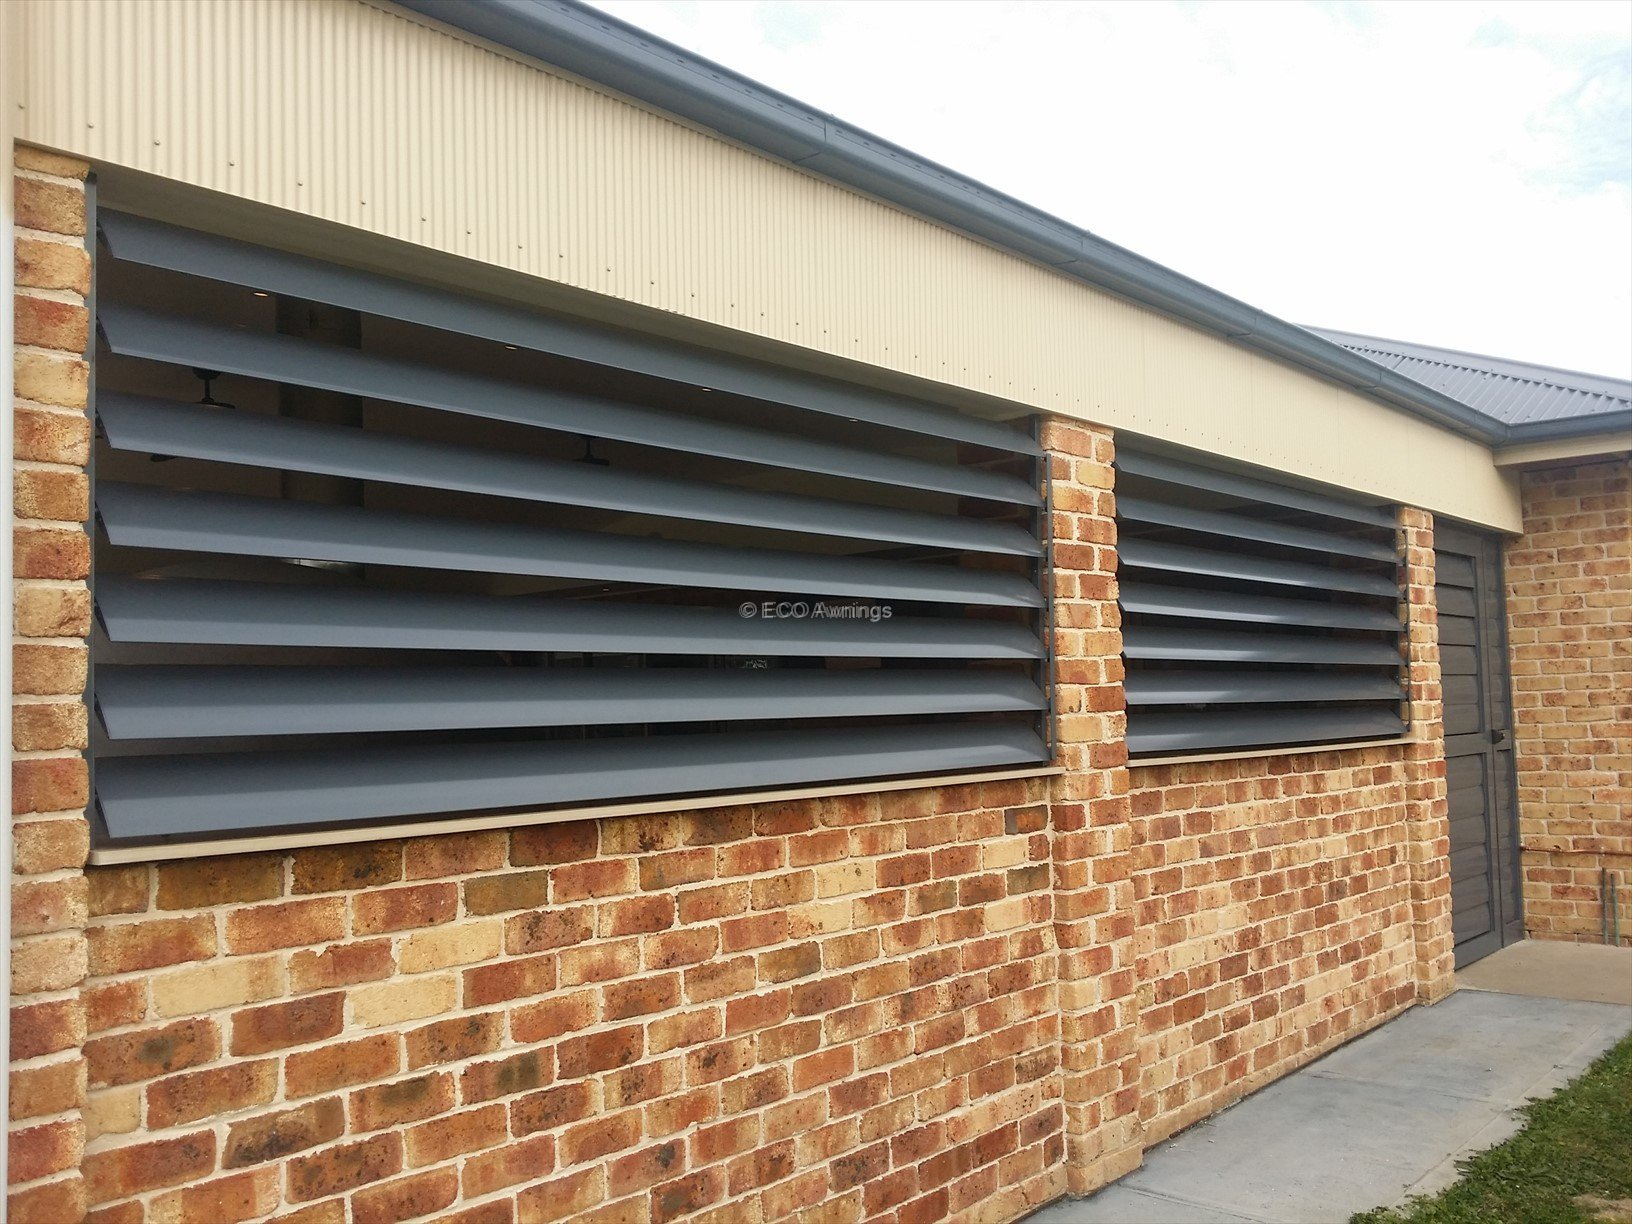 Louver Doors With 160mm Adjustable Louver Blades Eco Awnings